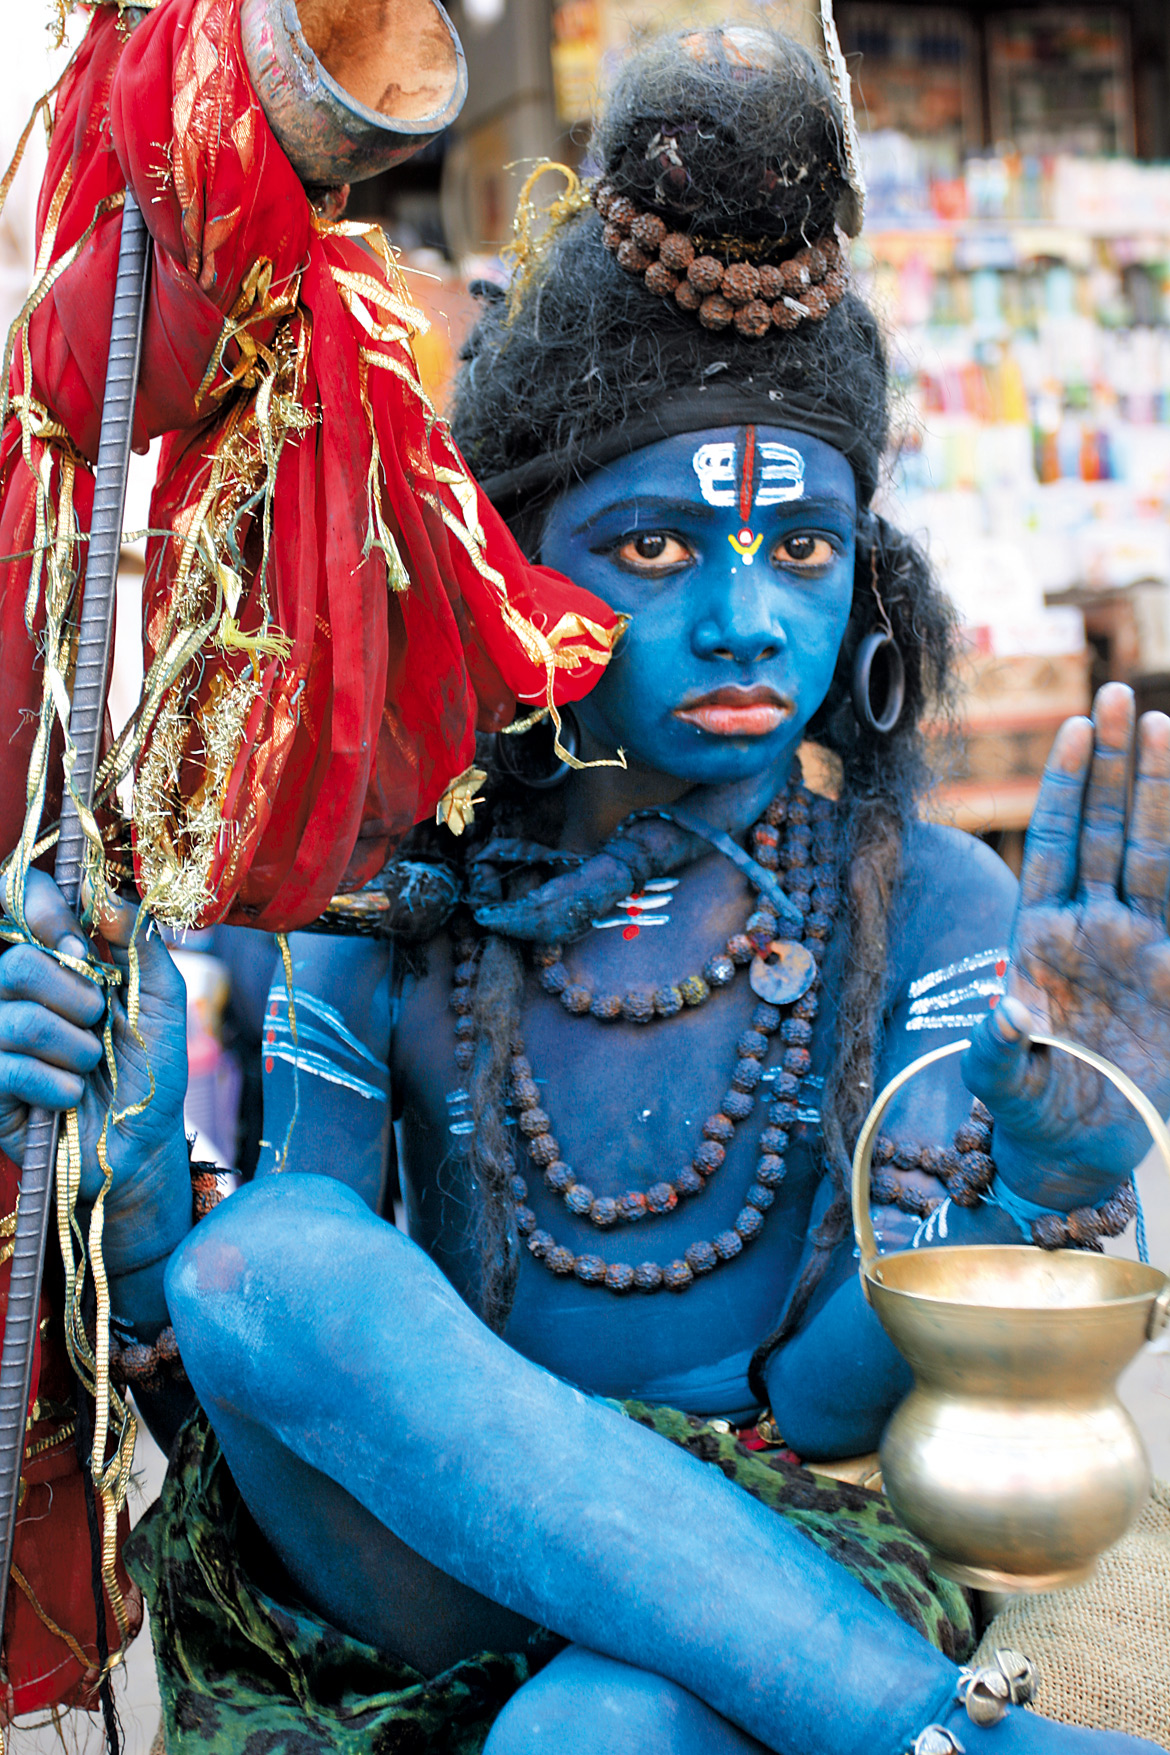 A boy dressed up as Lord Shiva